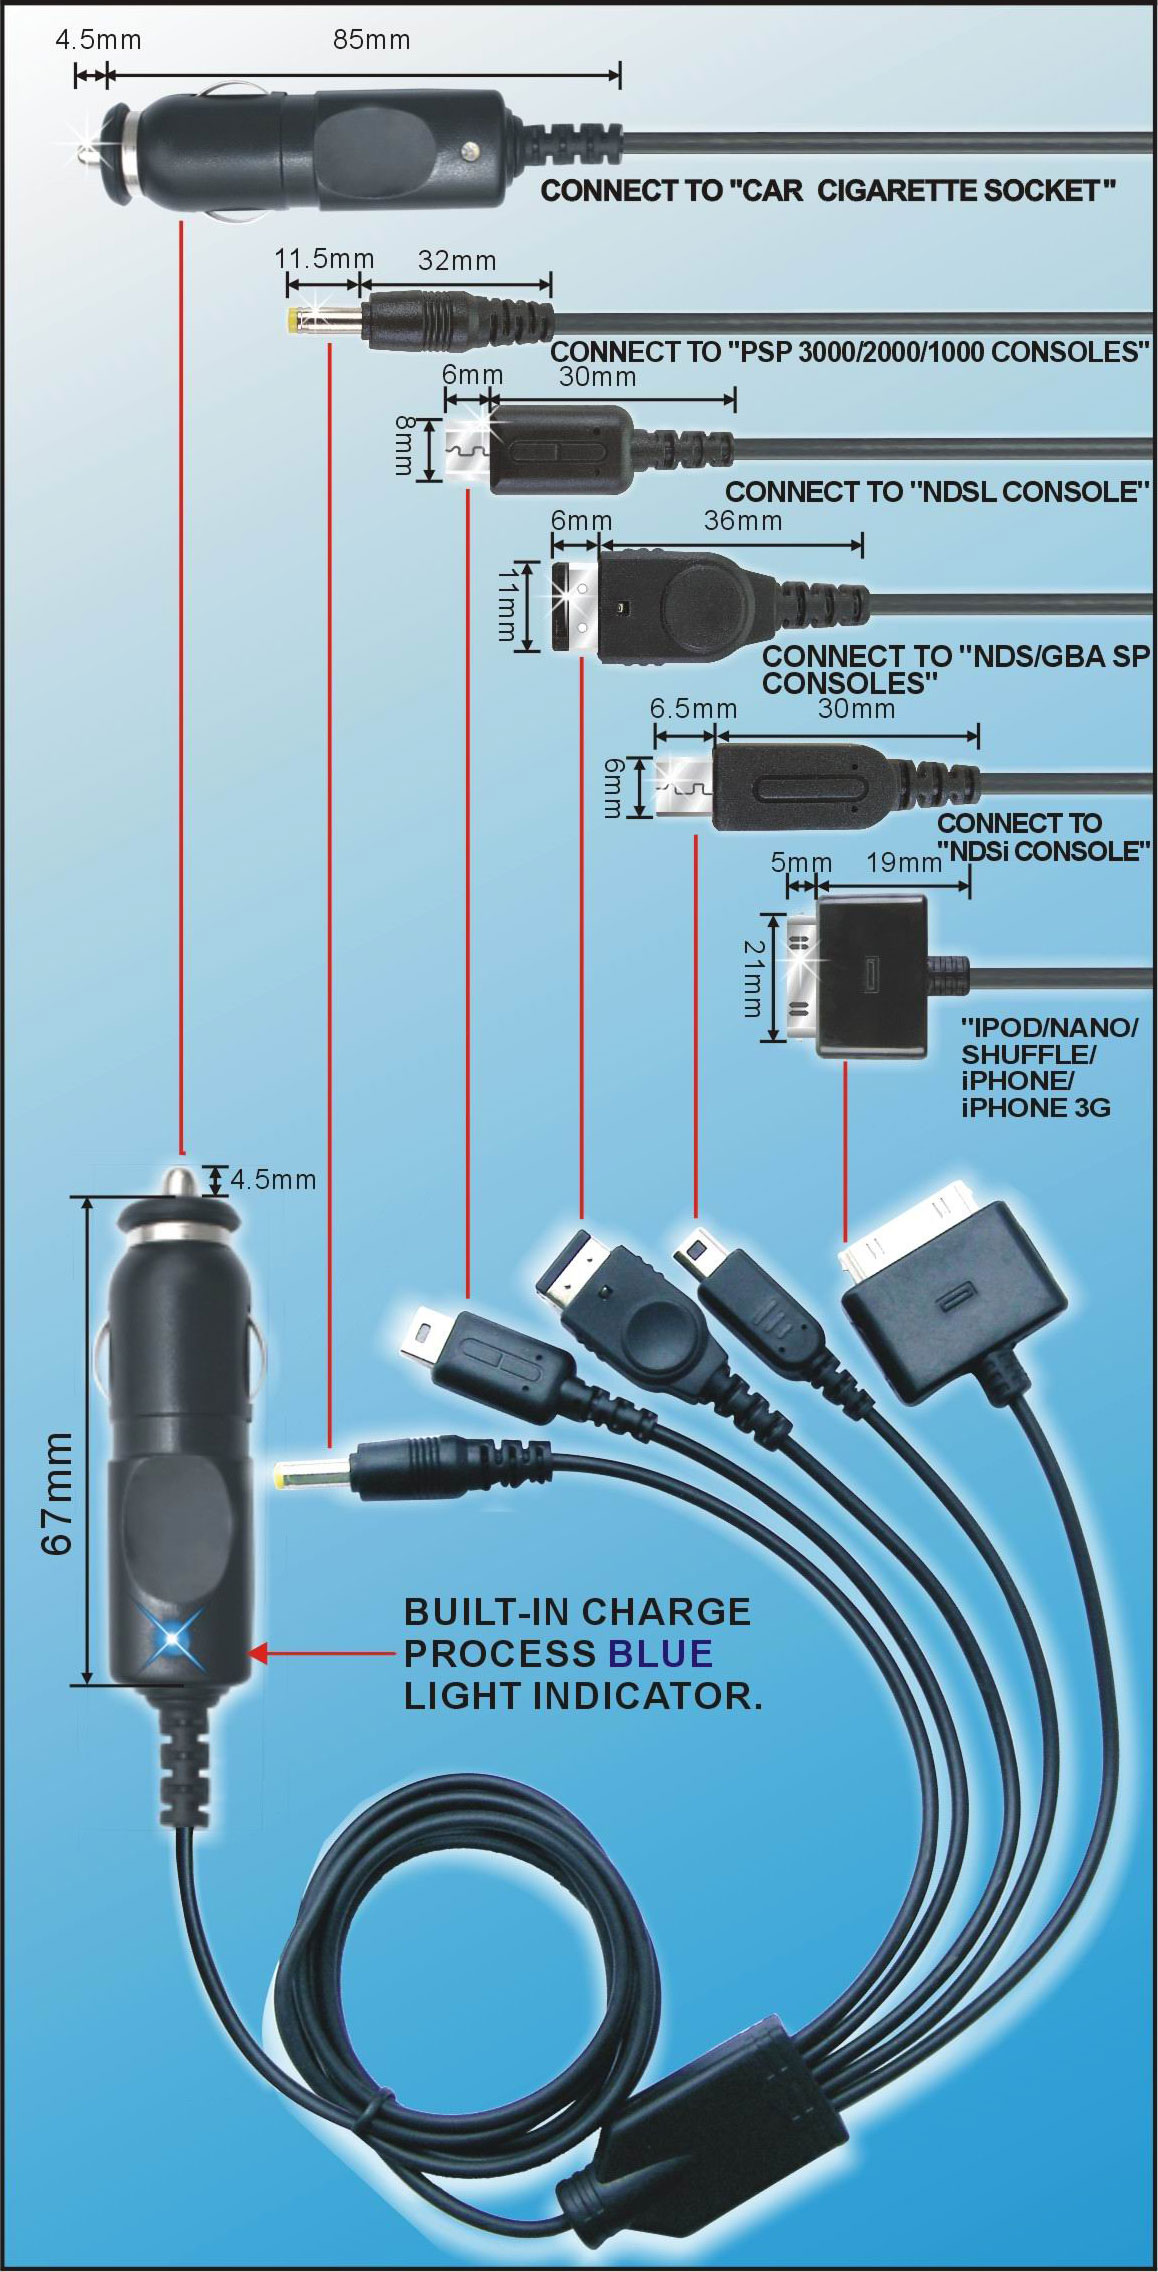 11in1 USB Charger cable for DS/DSi/DS Lite/SP/PSP/iPhone